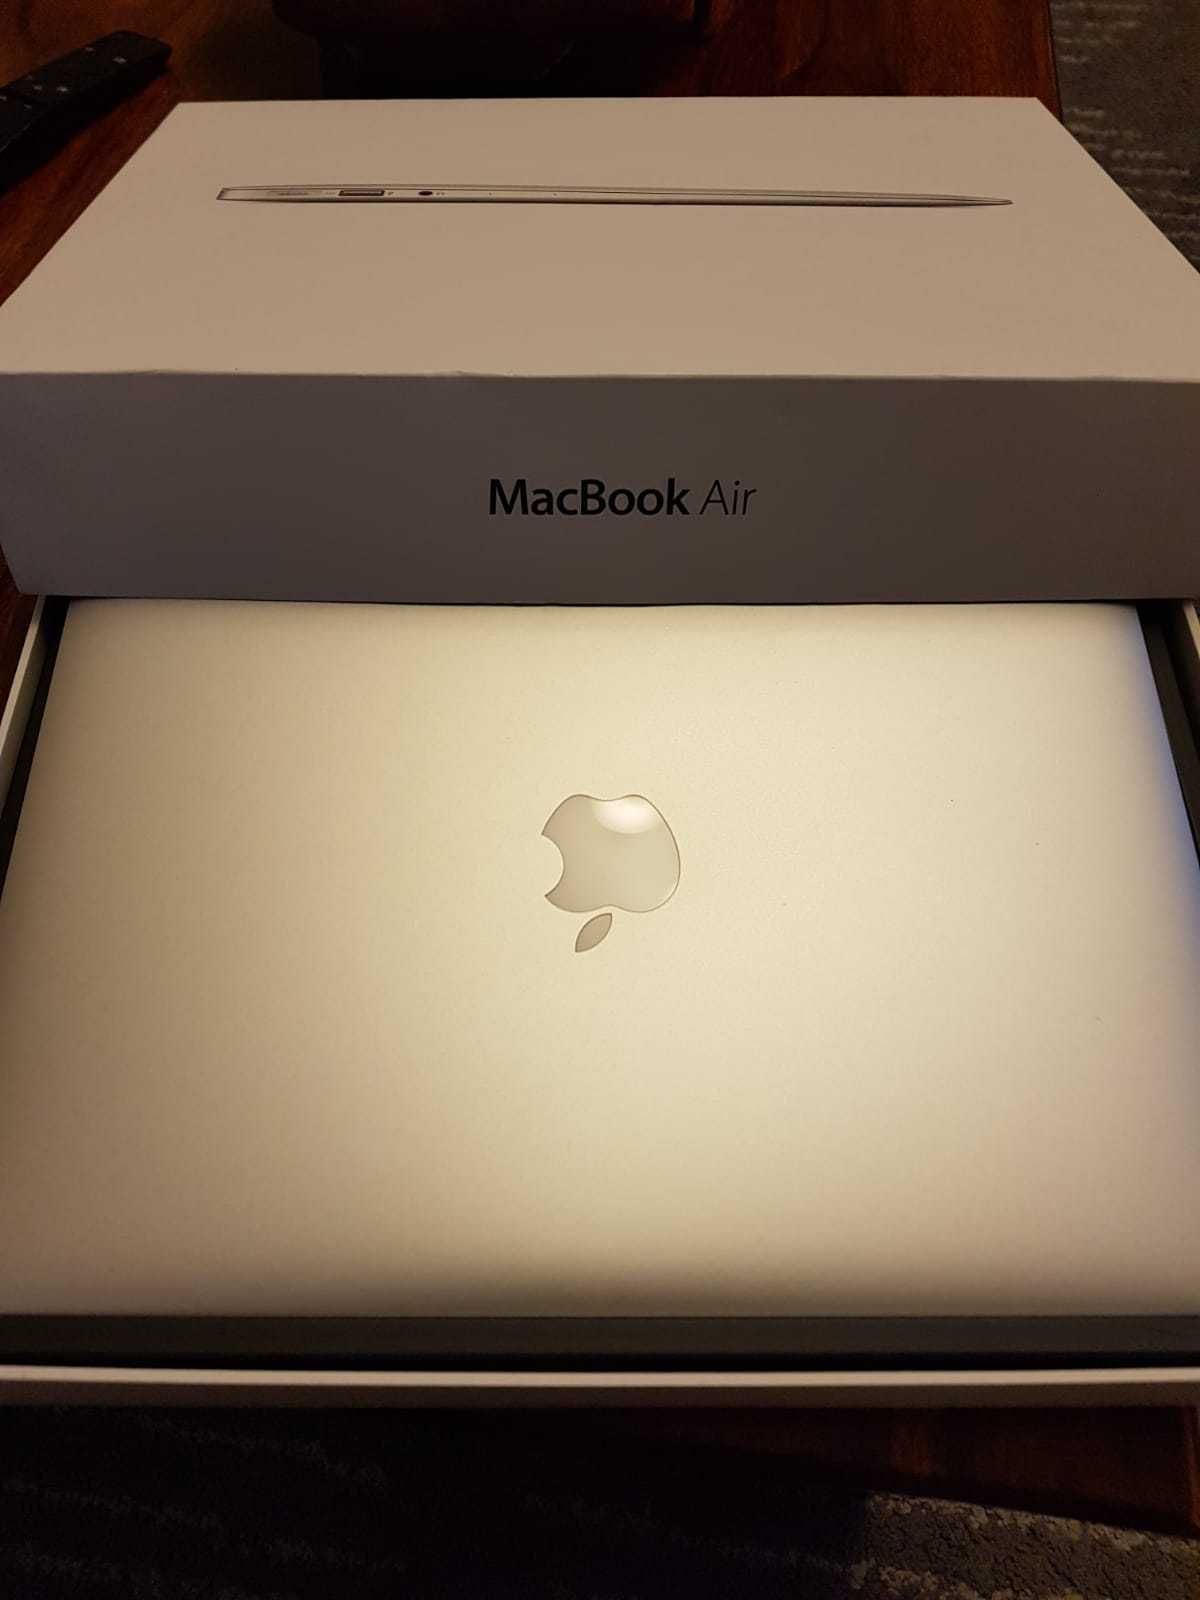 Apple Macbook Air 13 Laptop Early 2014 Mint Condition With Original Receipt Macbook Air Apple Macbook Air Macbook